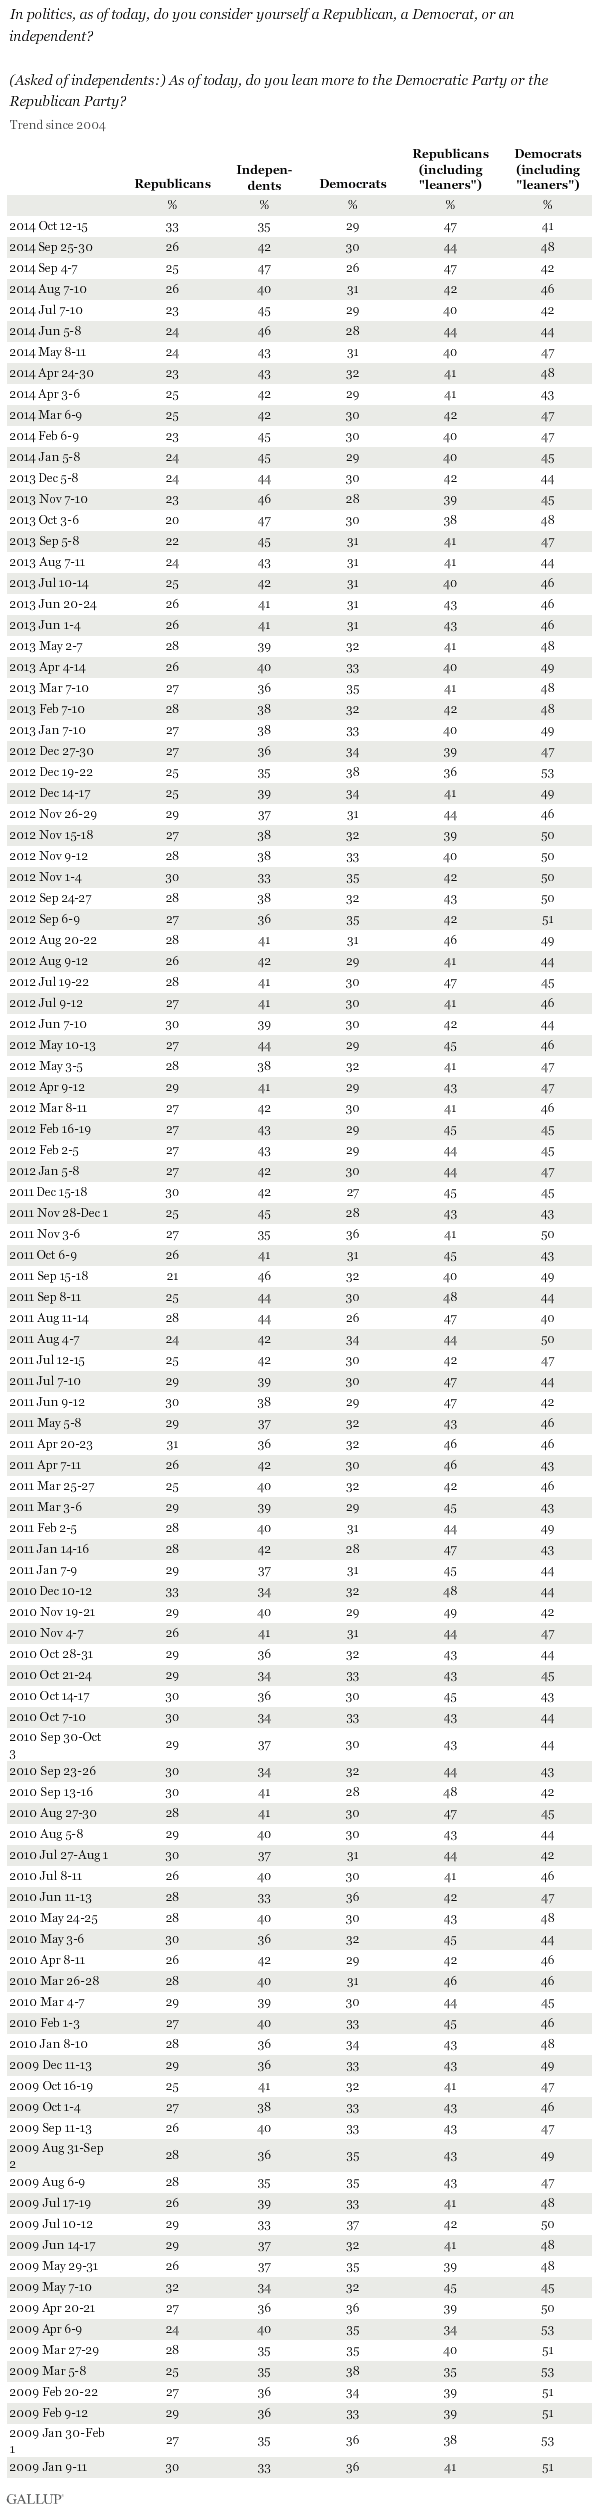 Party affiliation in U.S. plus leaners